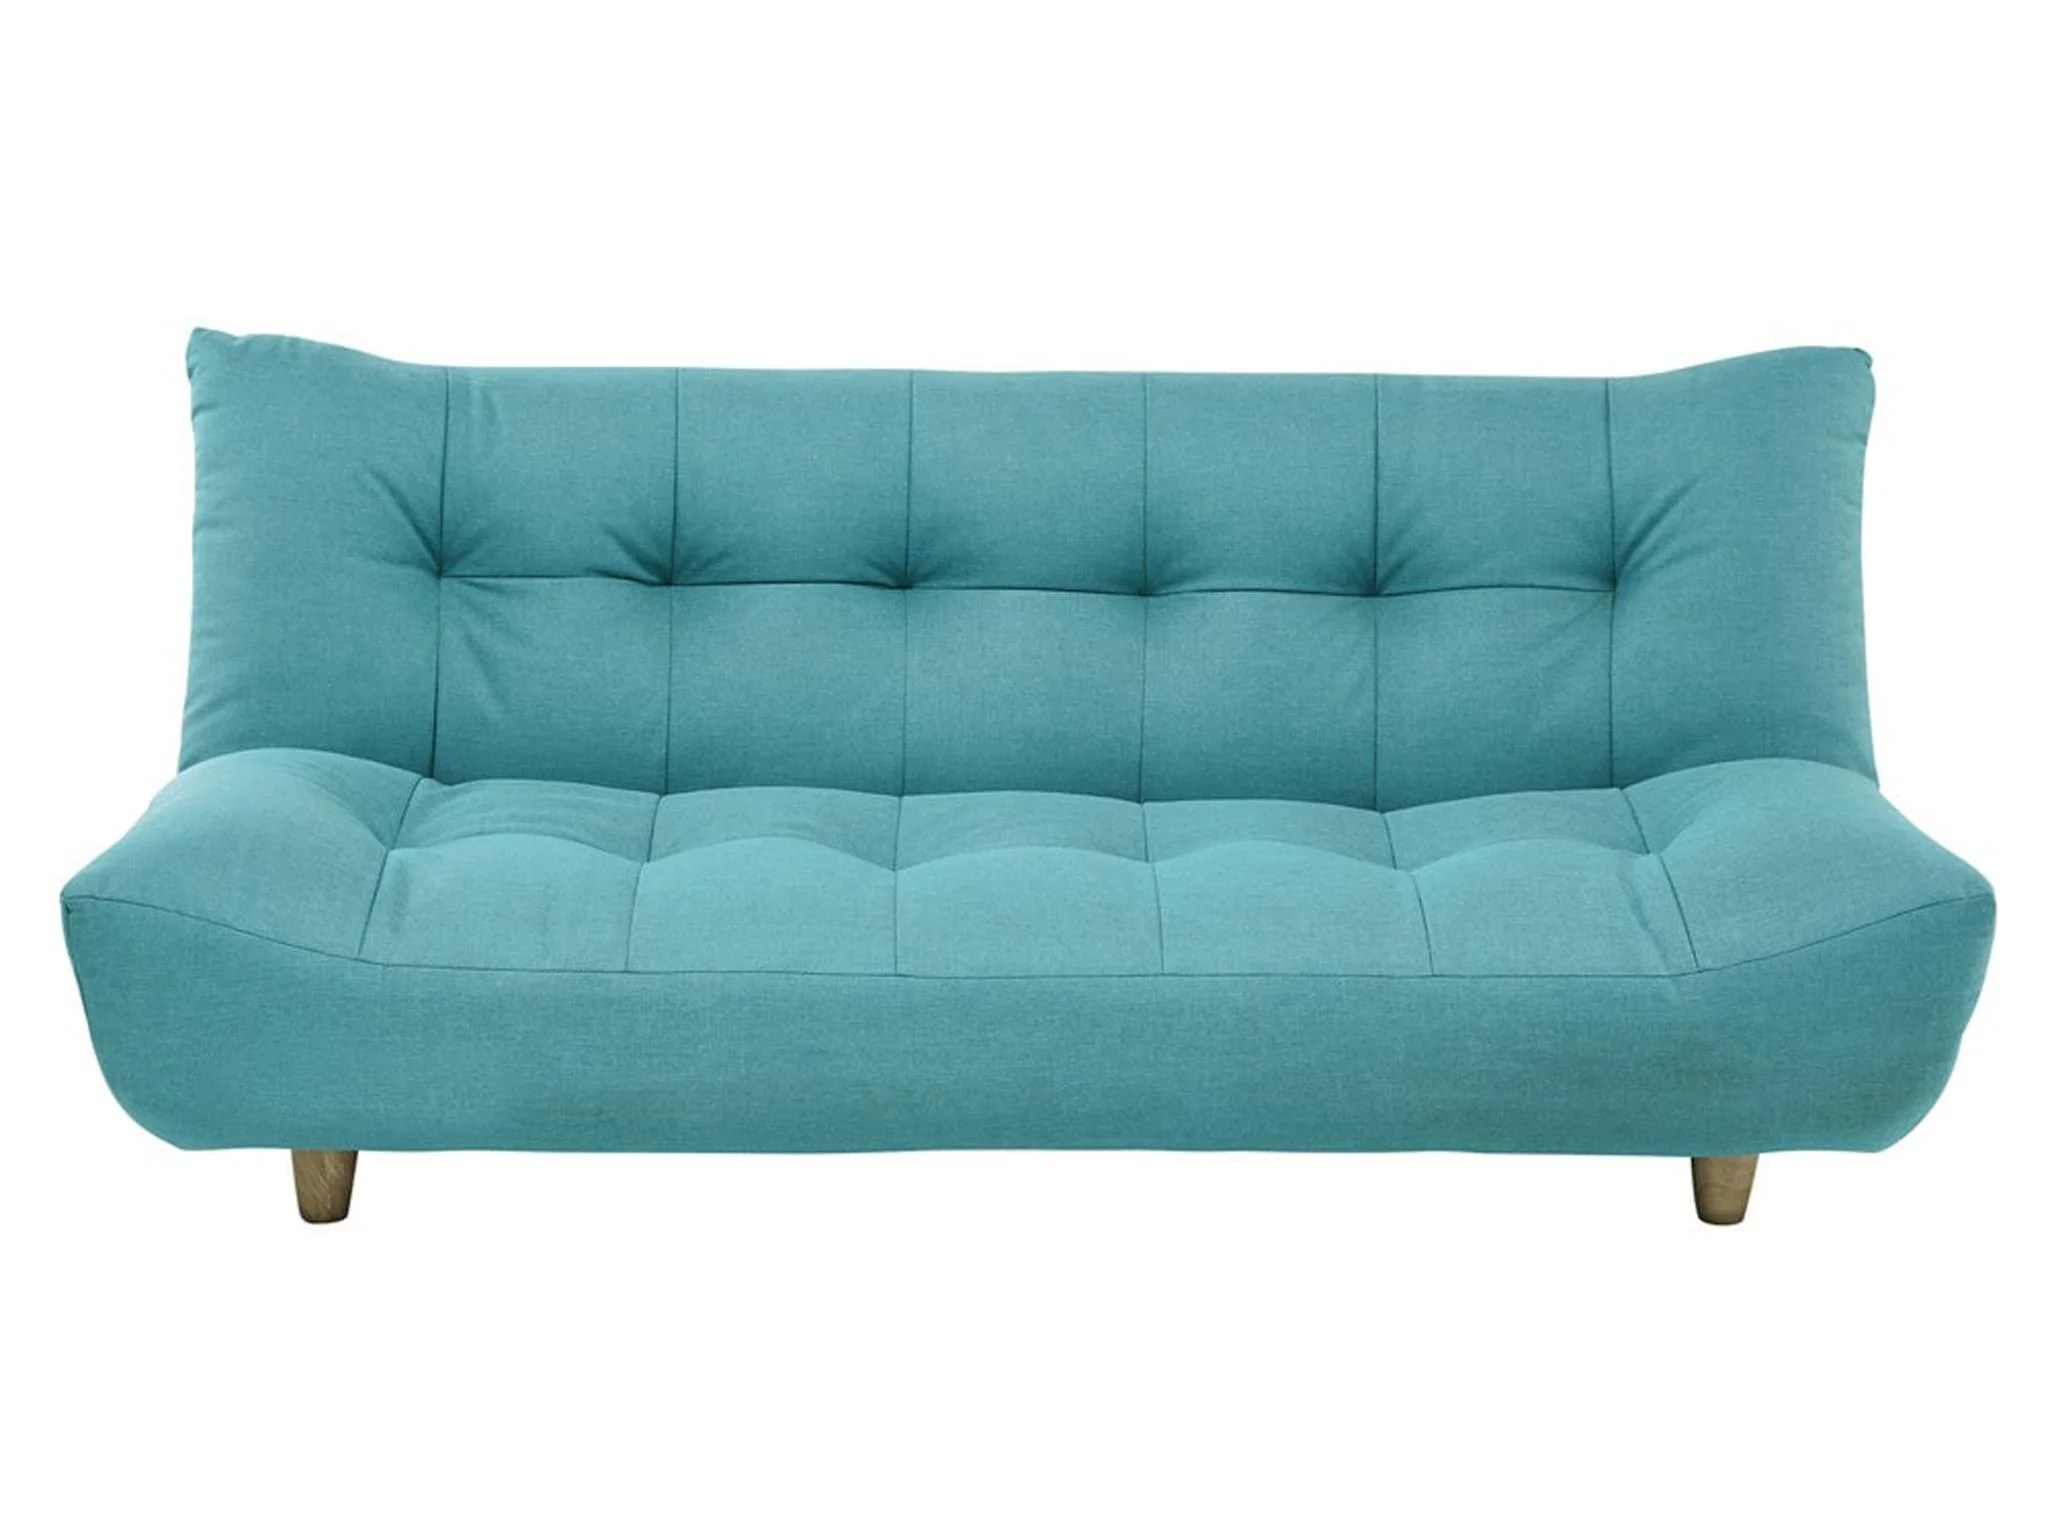 boconcept sleeper sofa review childrens bed 12 best beds the independent cloud 3 seater clic clac 314 maisons du monde